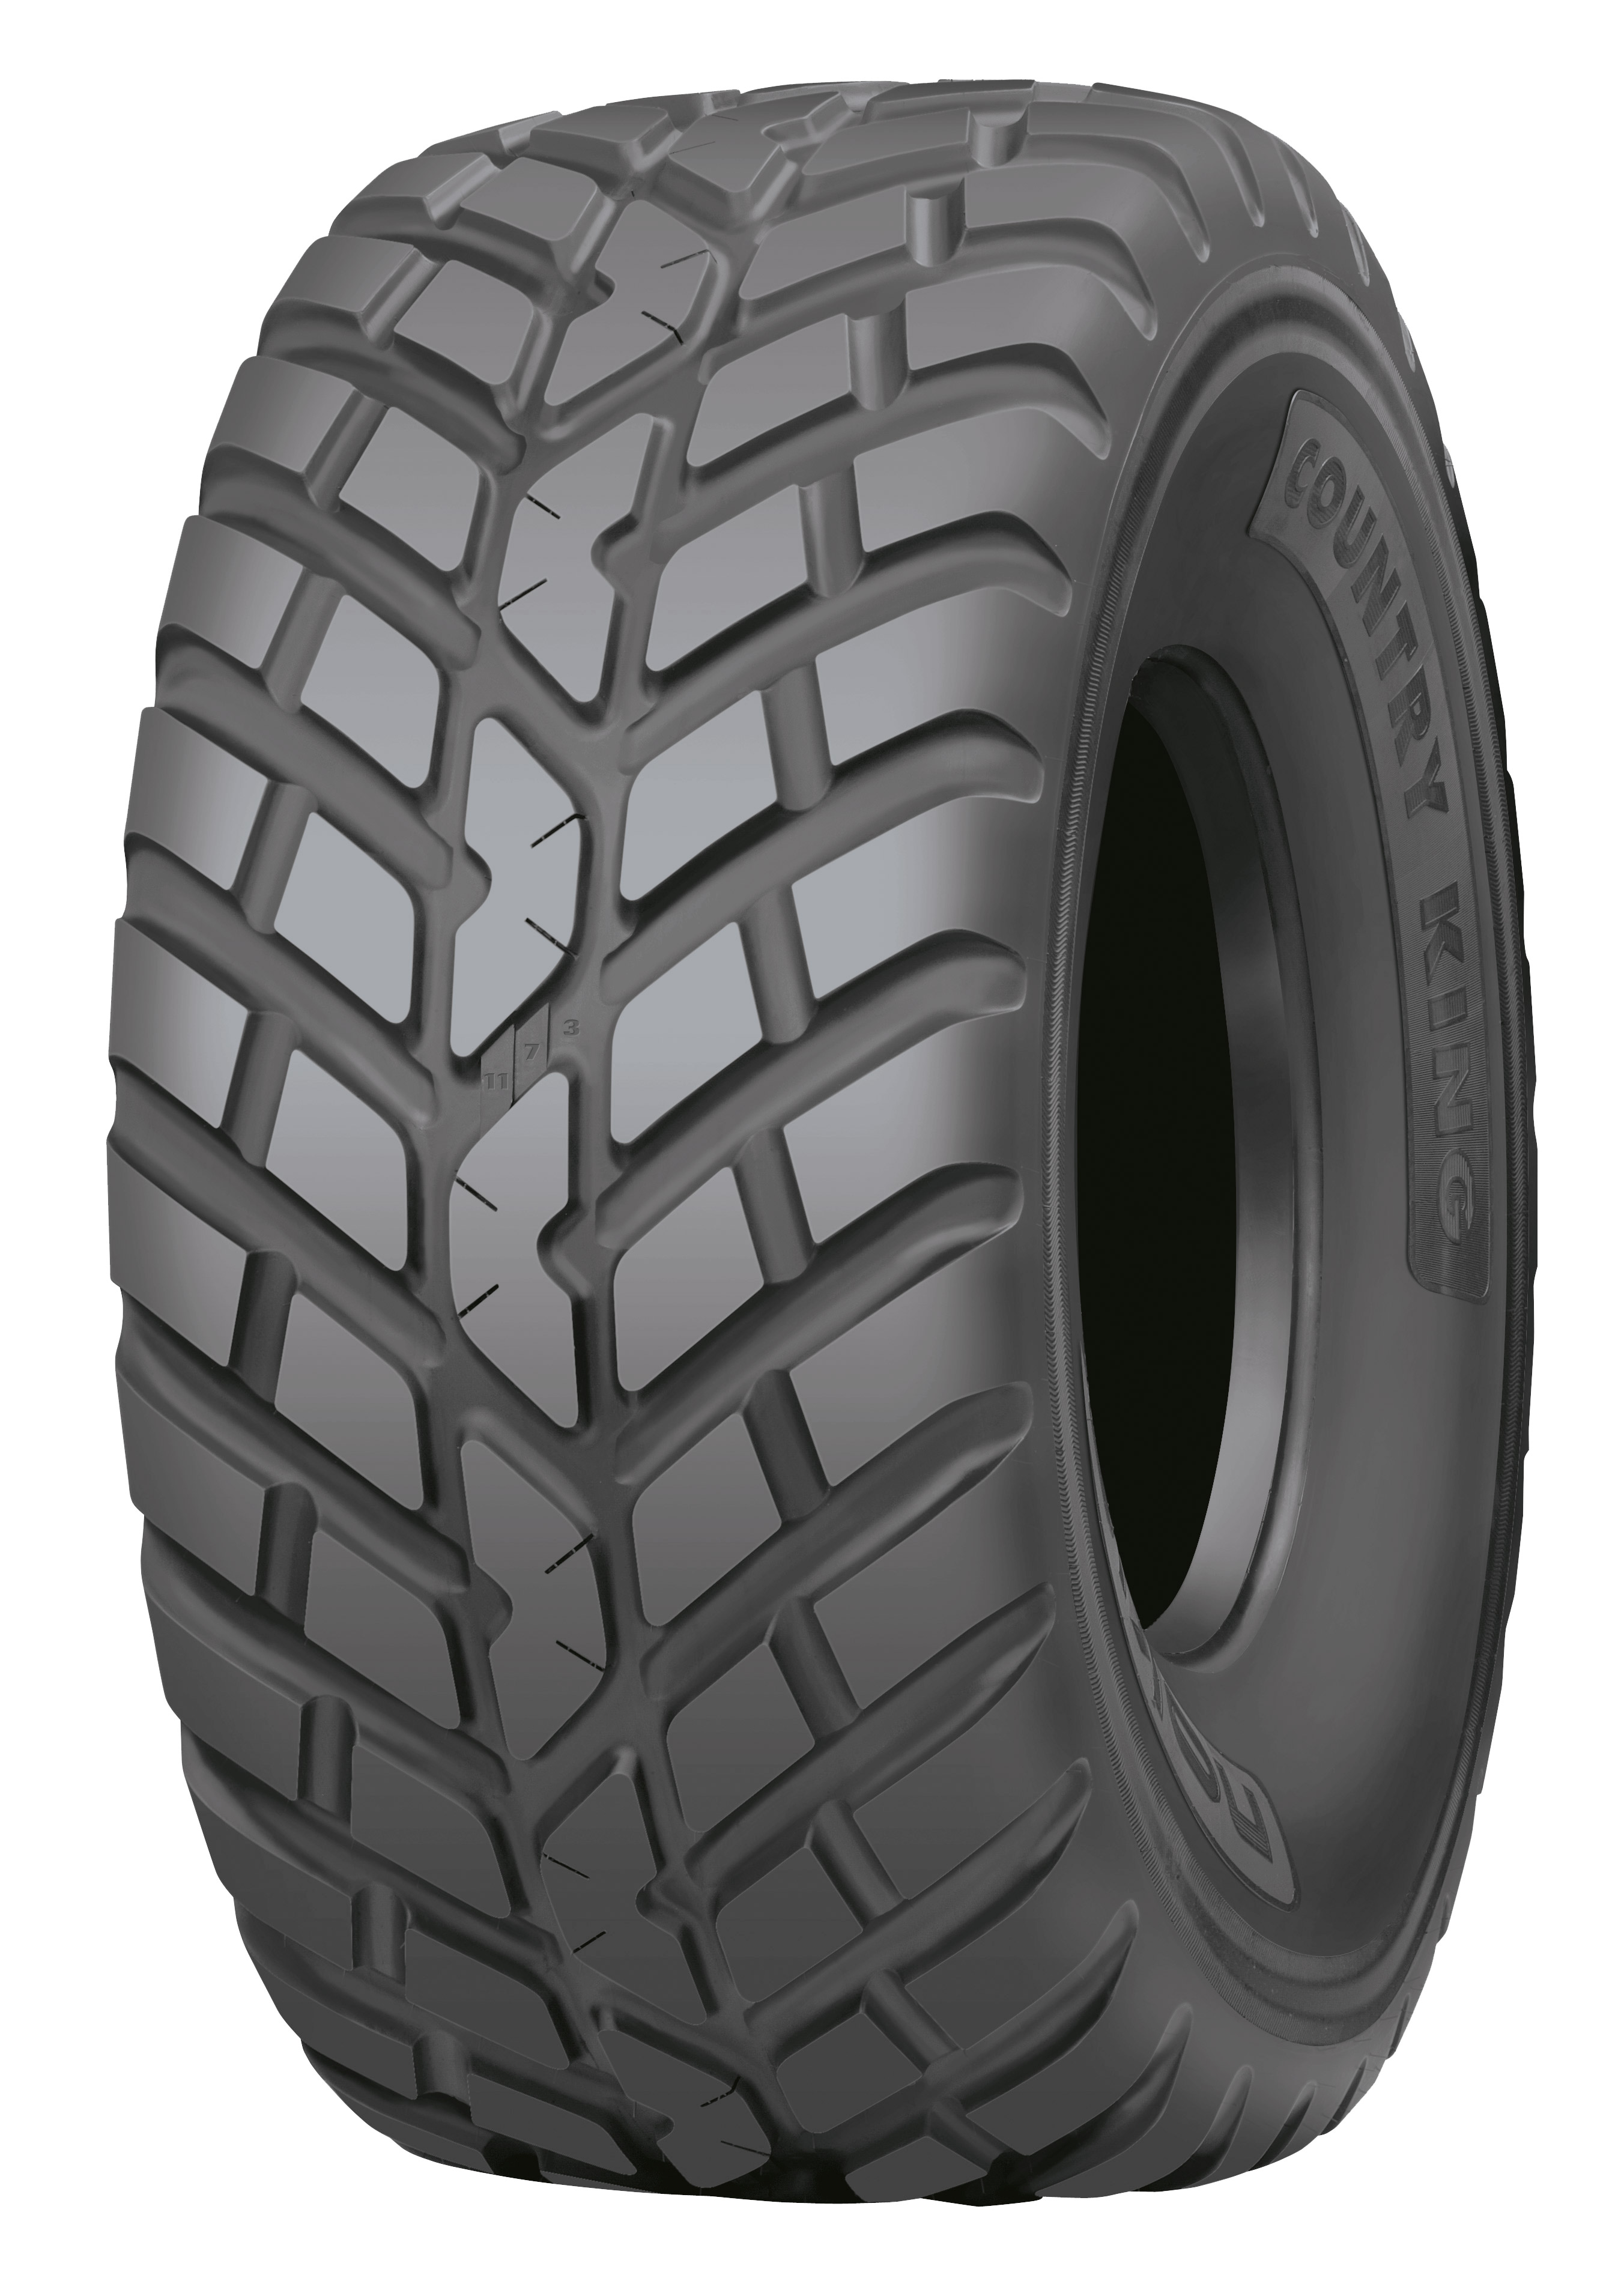 800/45R26.5 NOKIAN COUNTRY KING 174D